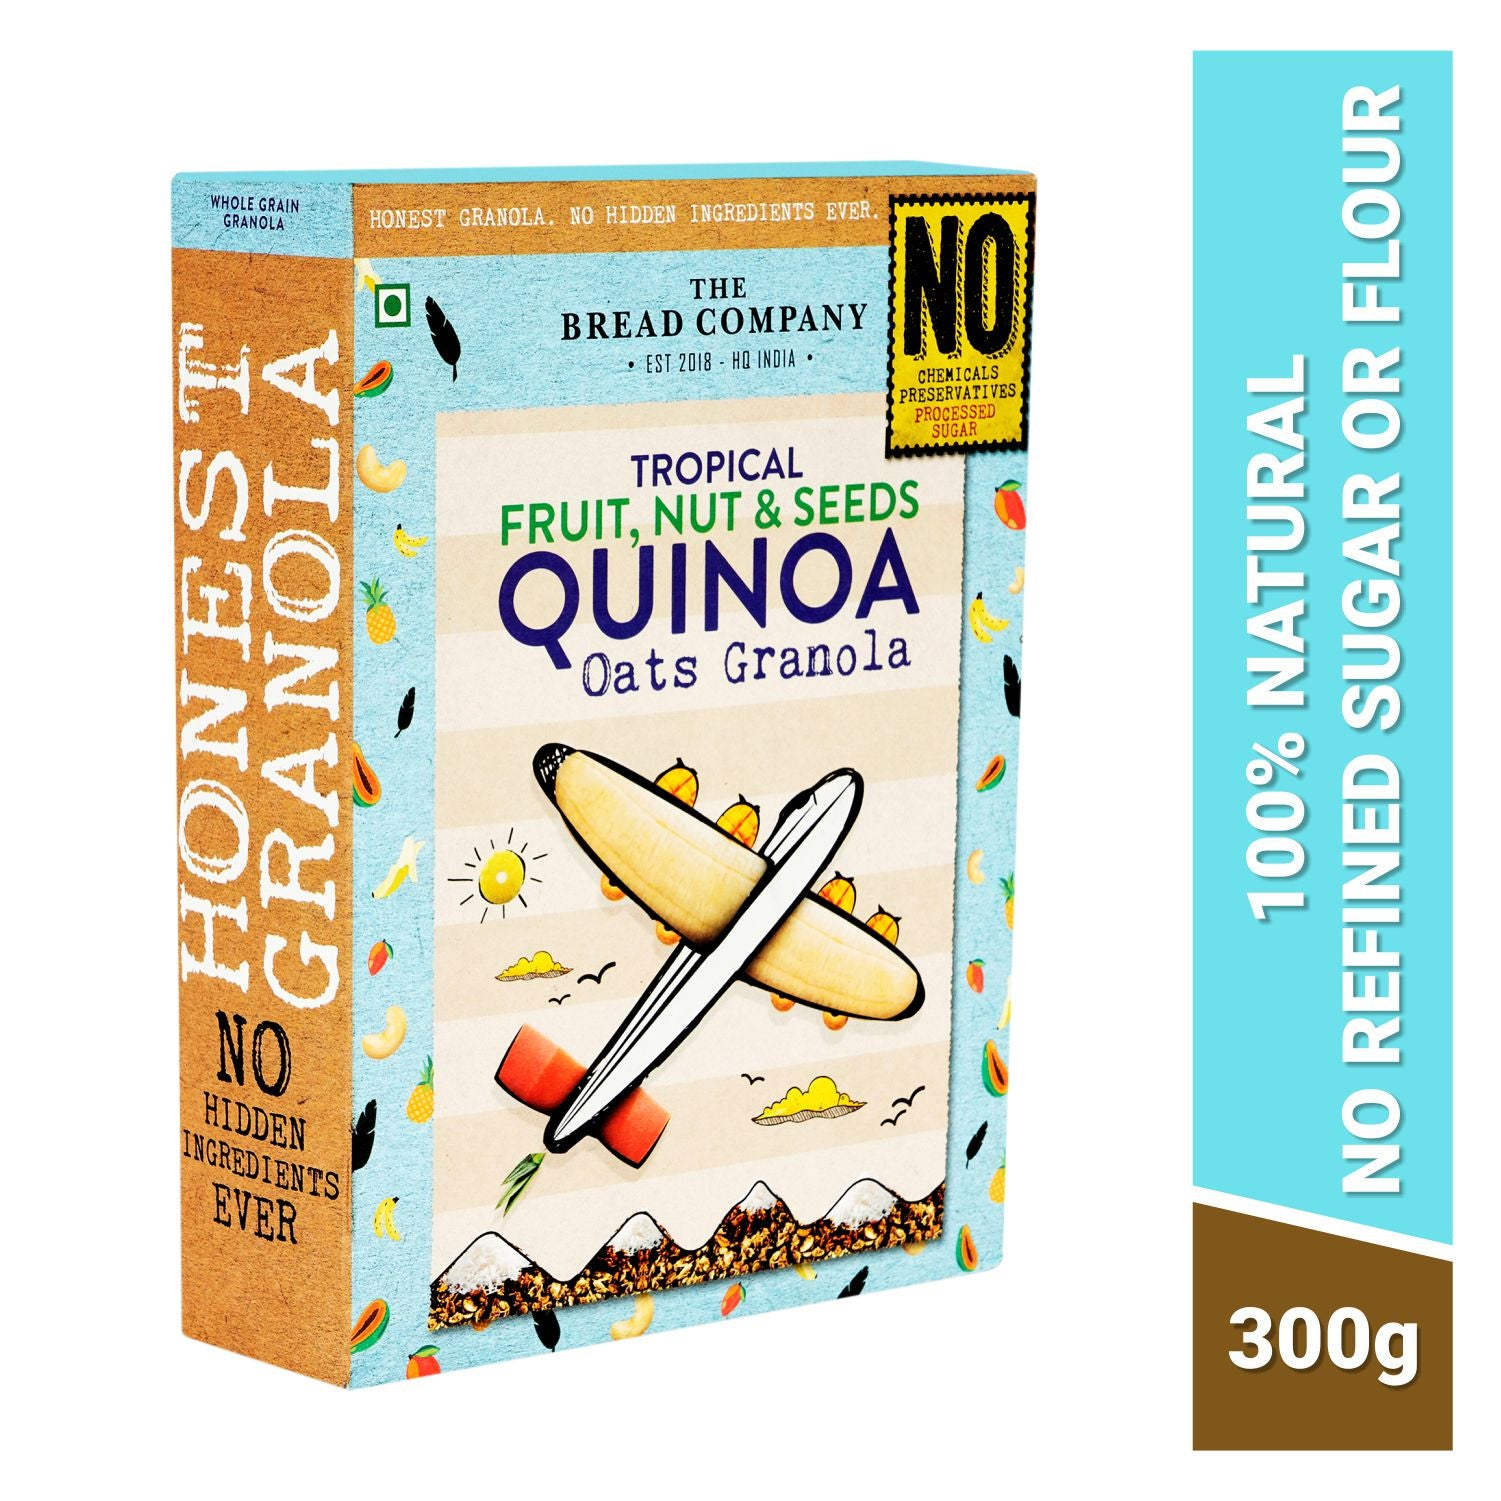 Tropical fruit nut and seeds Quinoa Oats Granola  - 300 gms